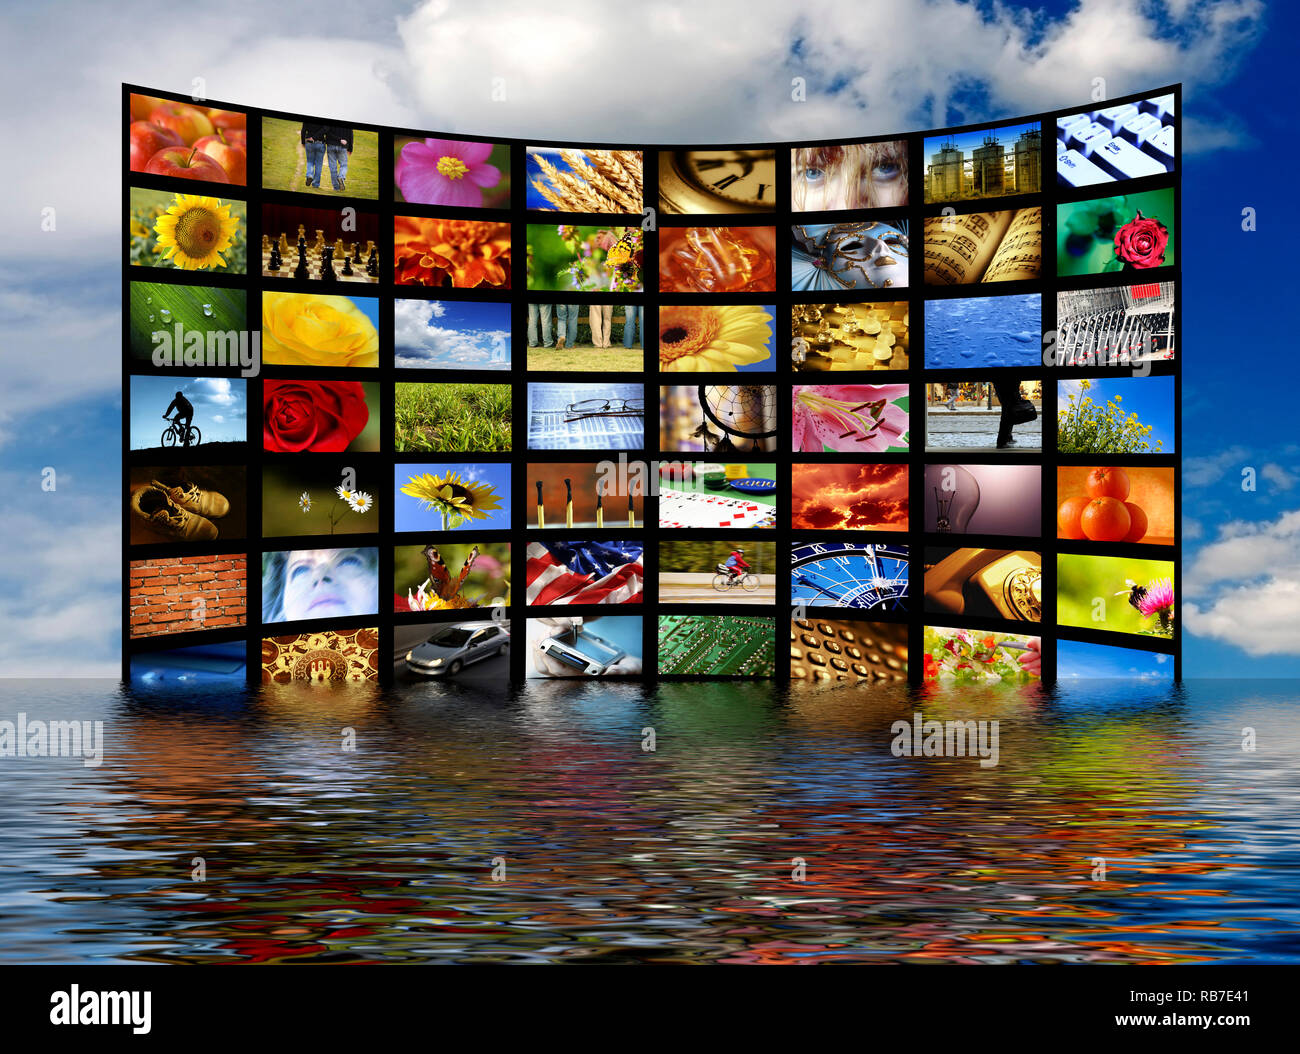 wall of many flat screens as concept for digital and satellite television - Stock Image